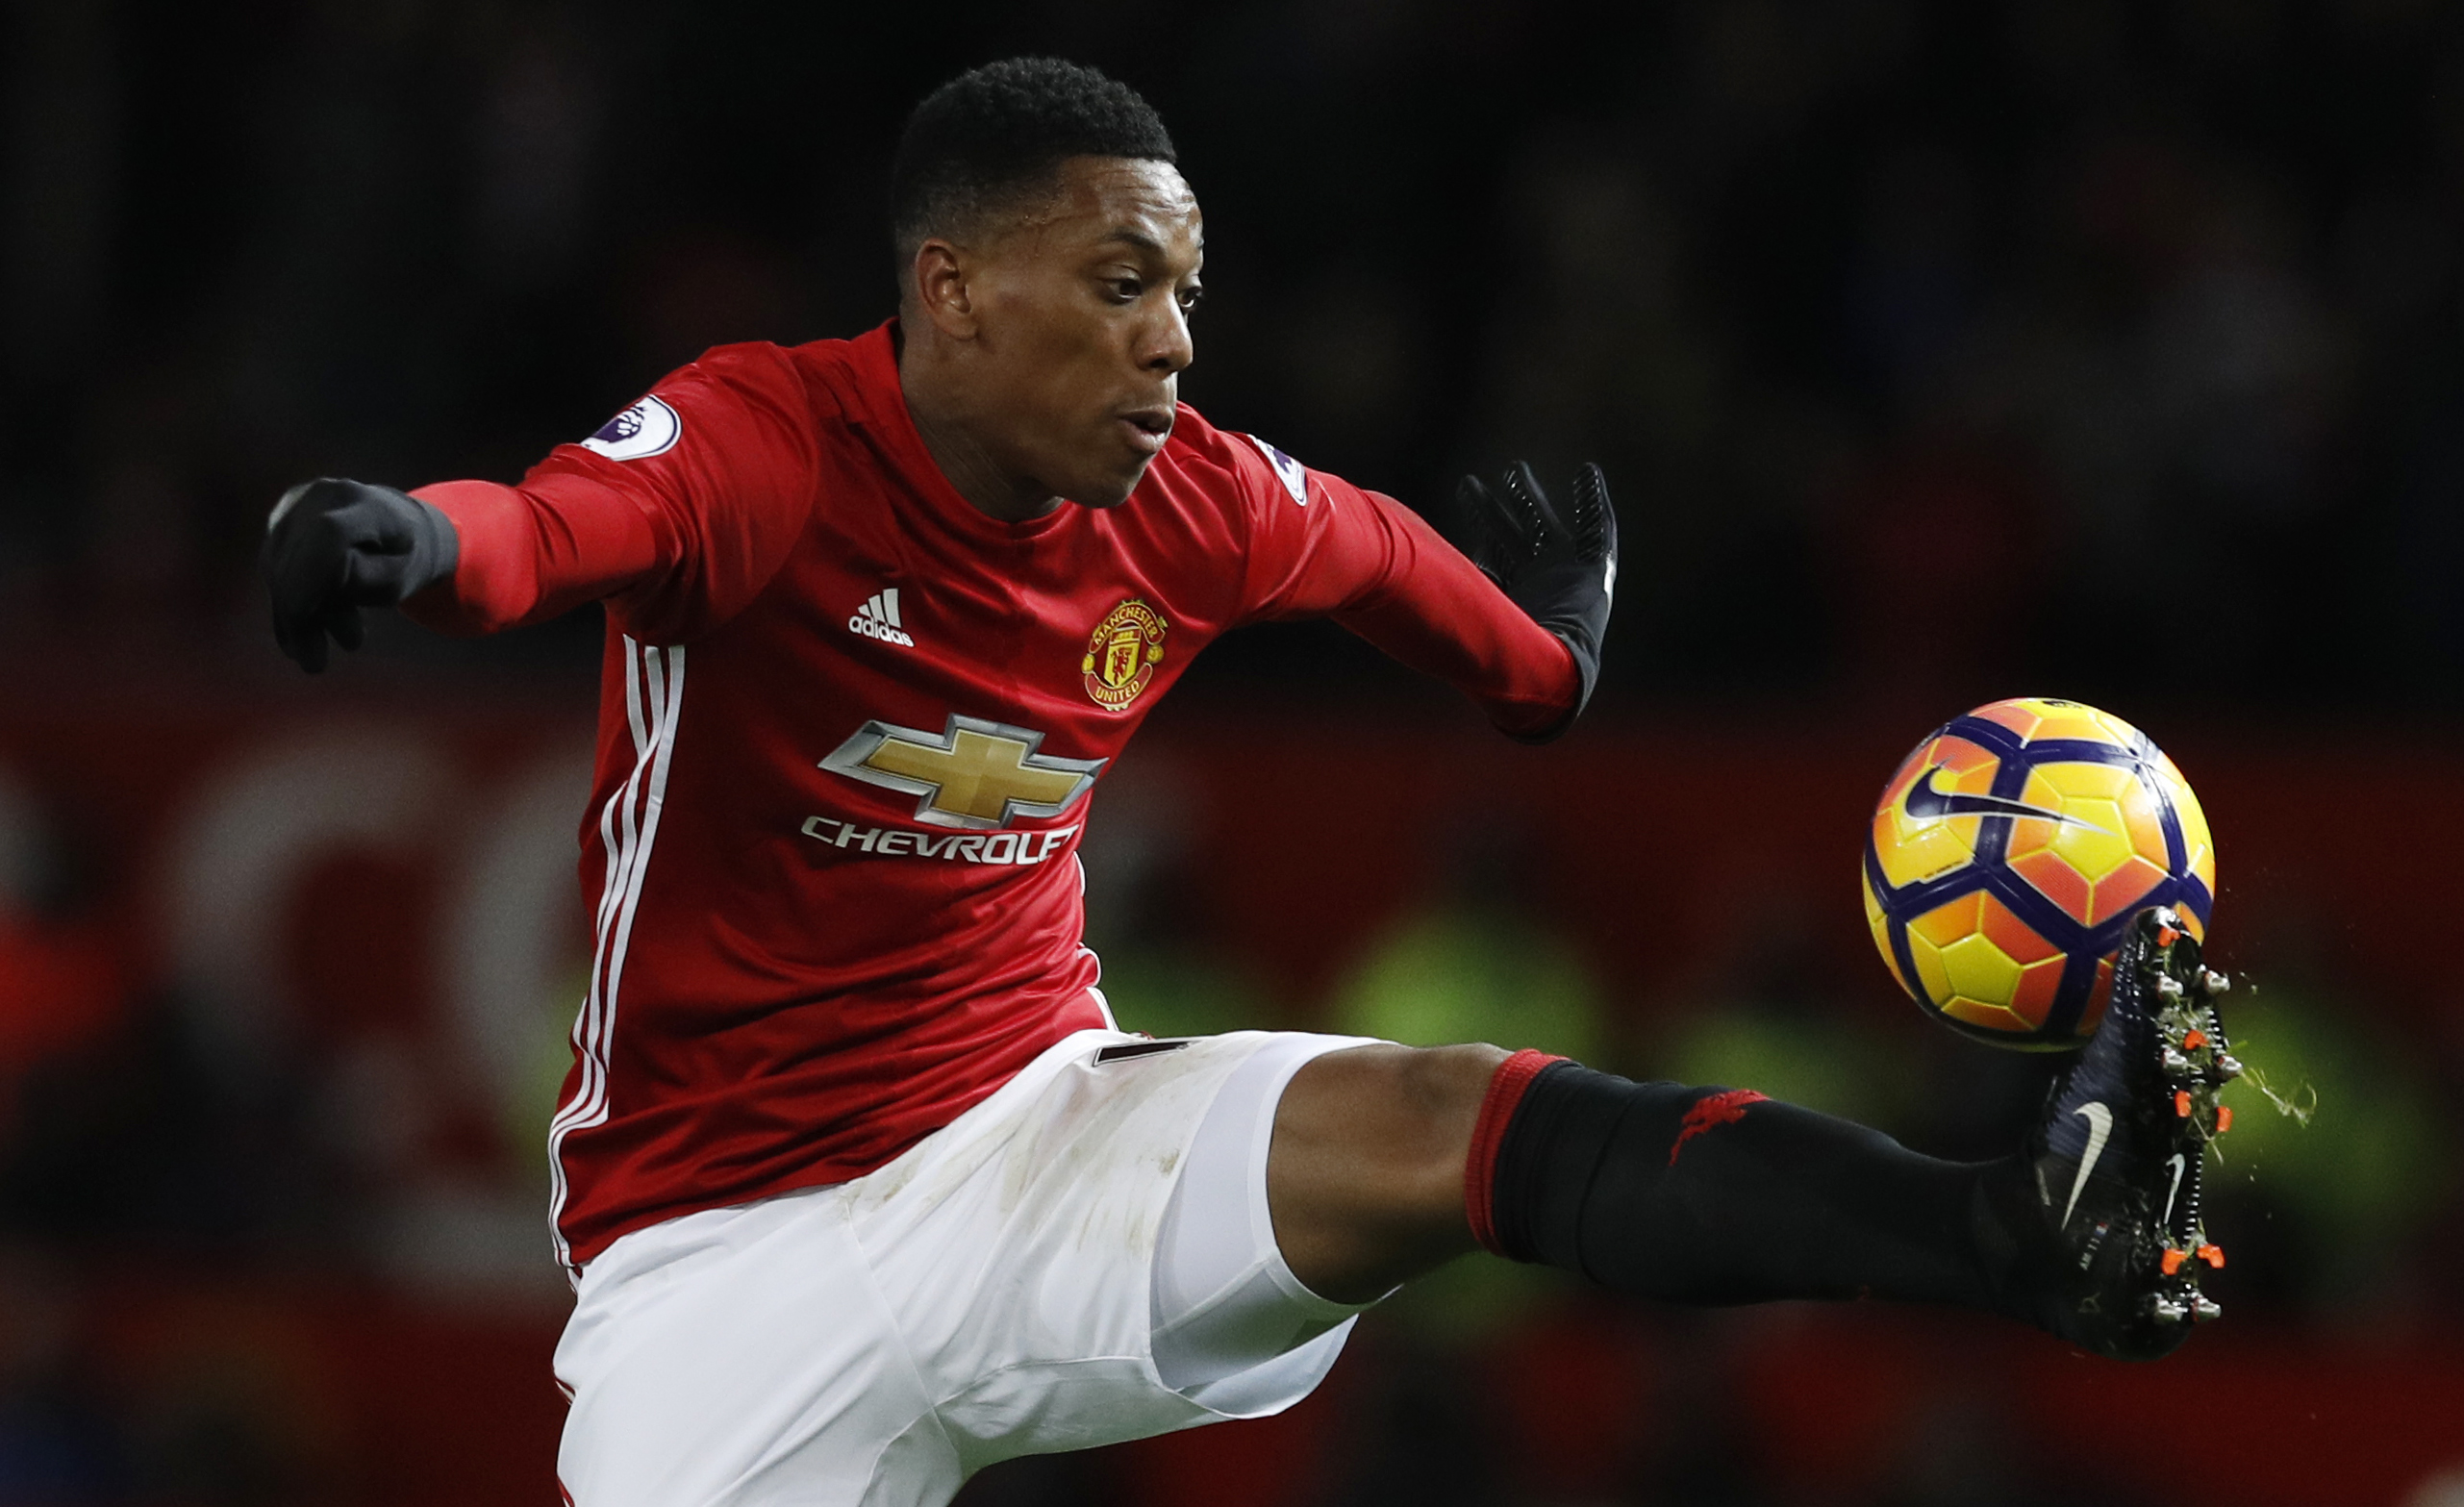 Football - Etranger - Premier League : Manchester United-Swansea en direct